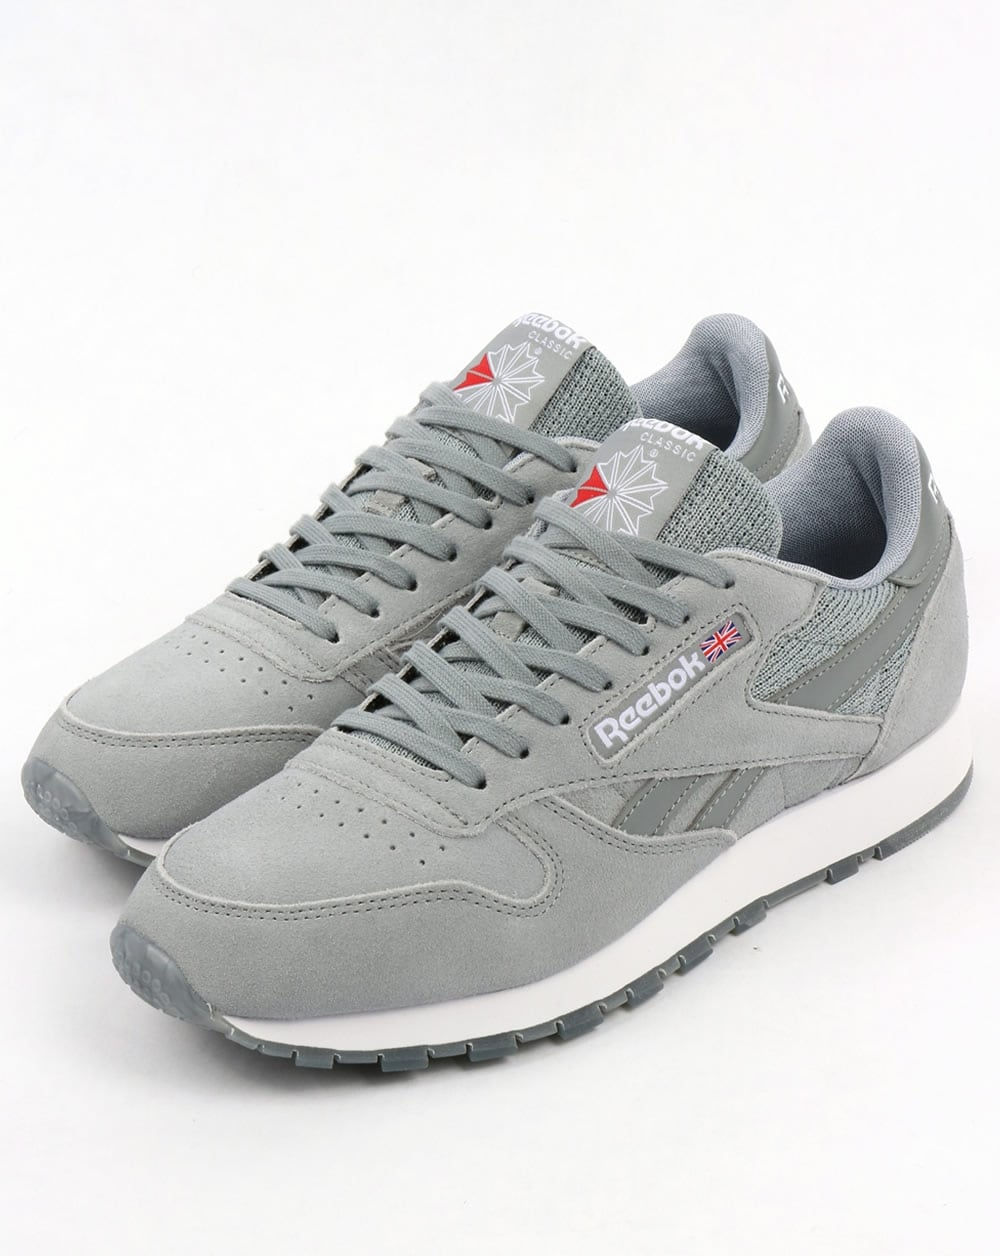 40fe9478df8 Reebok Classic Leather NM Trainers Flint Grey White